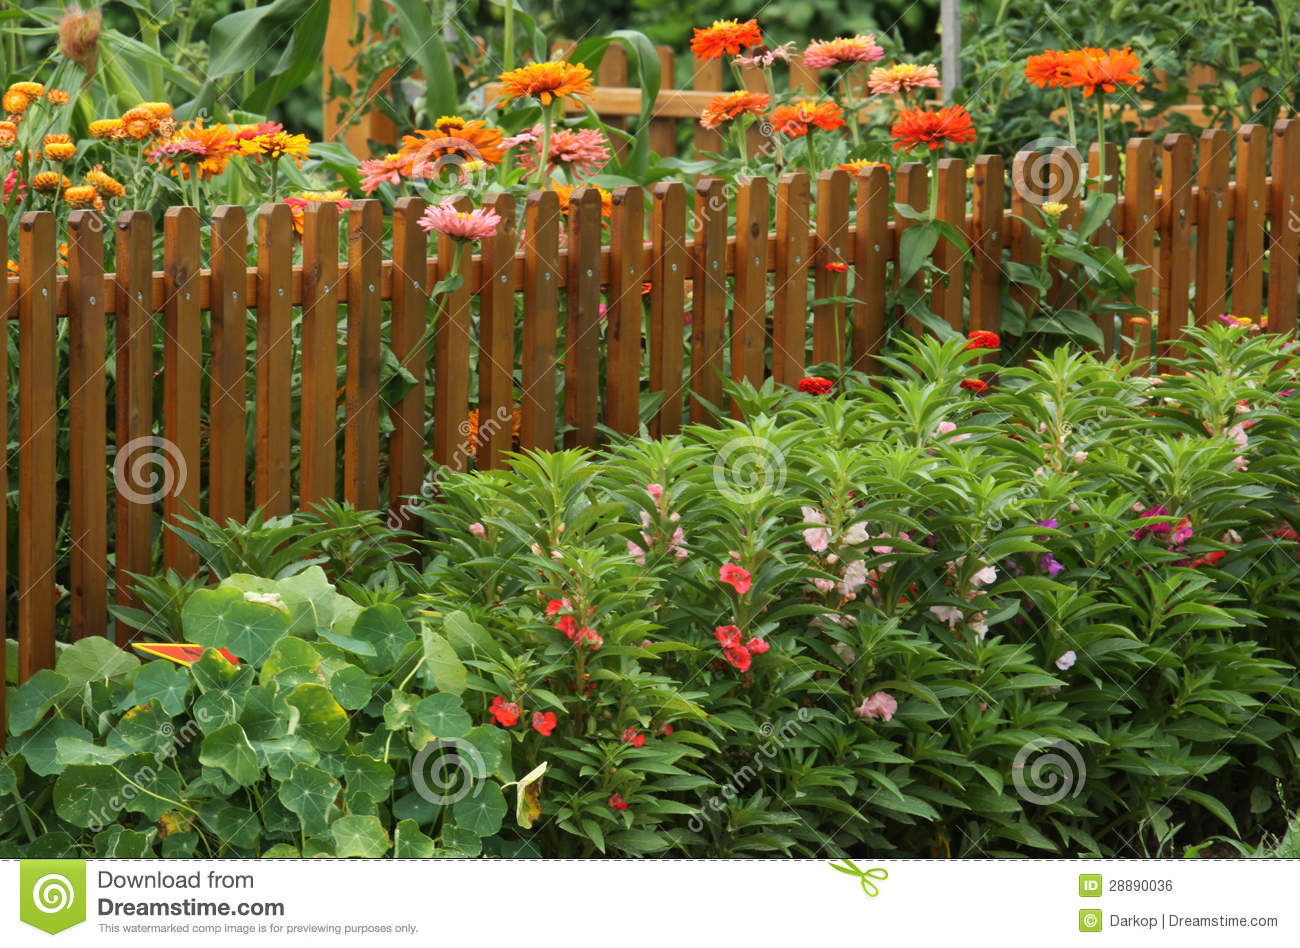 Vegetable garden with flowers border royalty free stock image image 28890036 Flowers to plant in vegetable garden